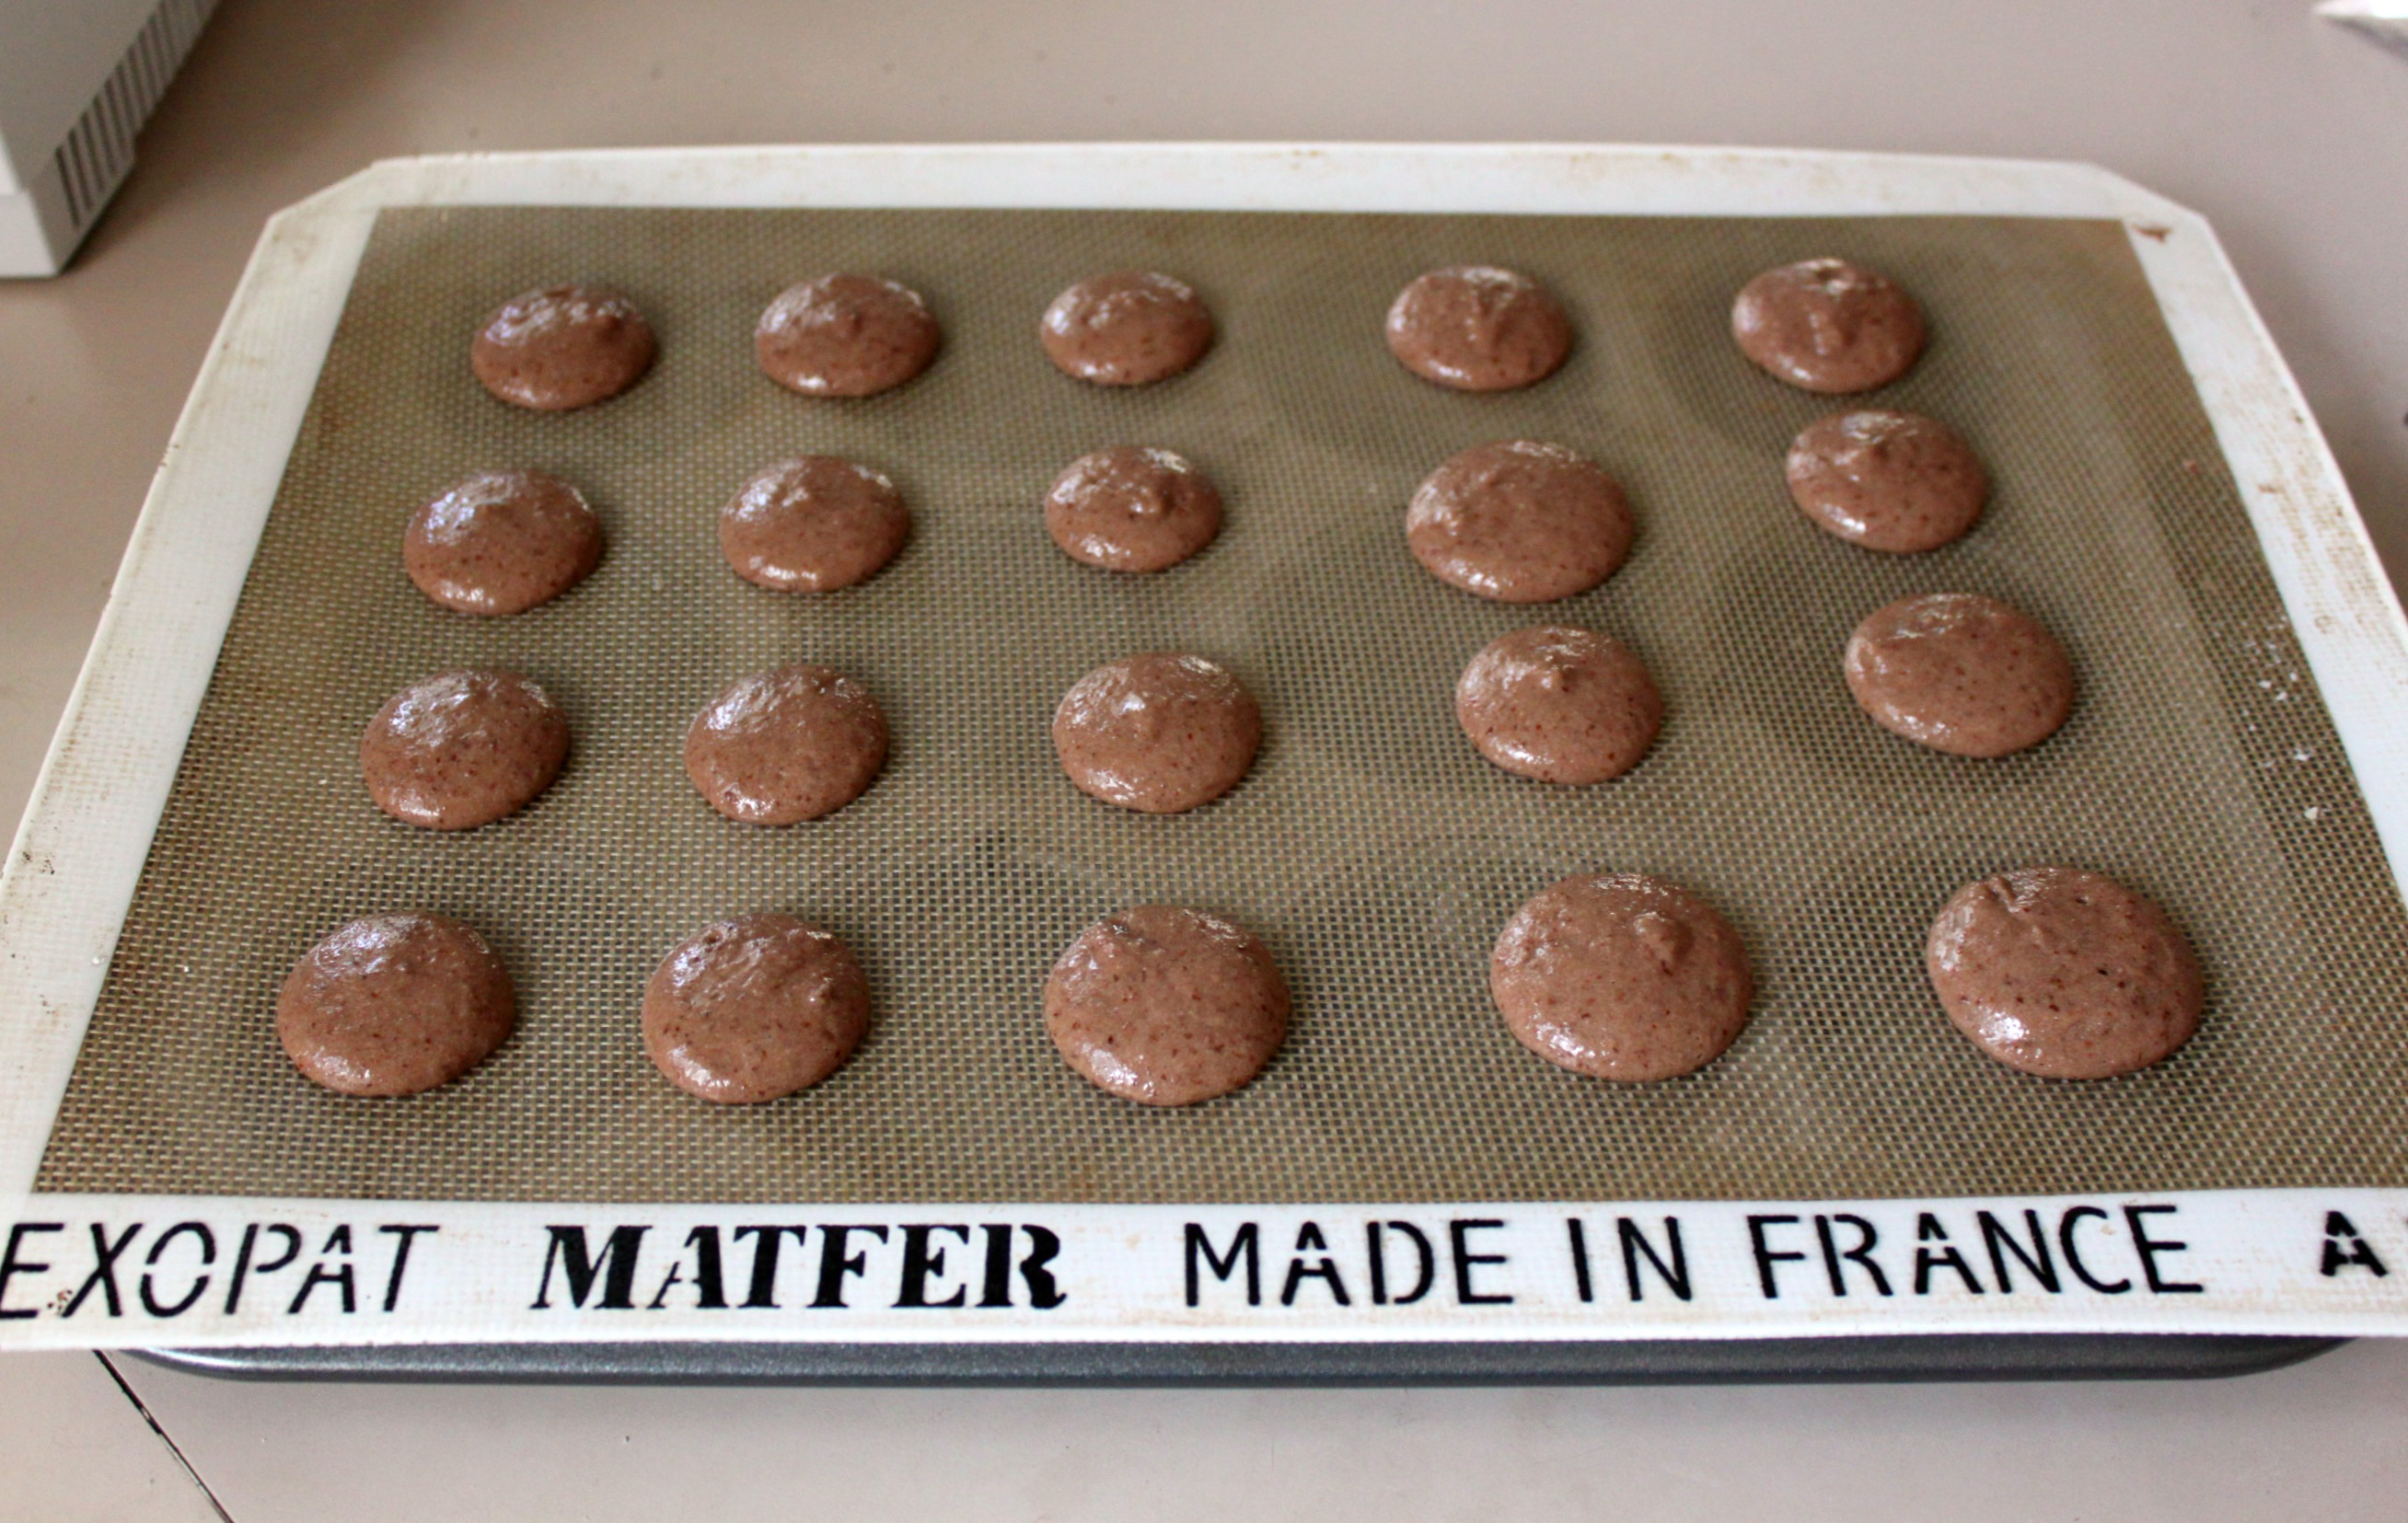 Pipe macaron batter onto prepared sheet